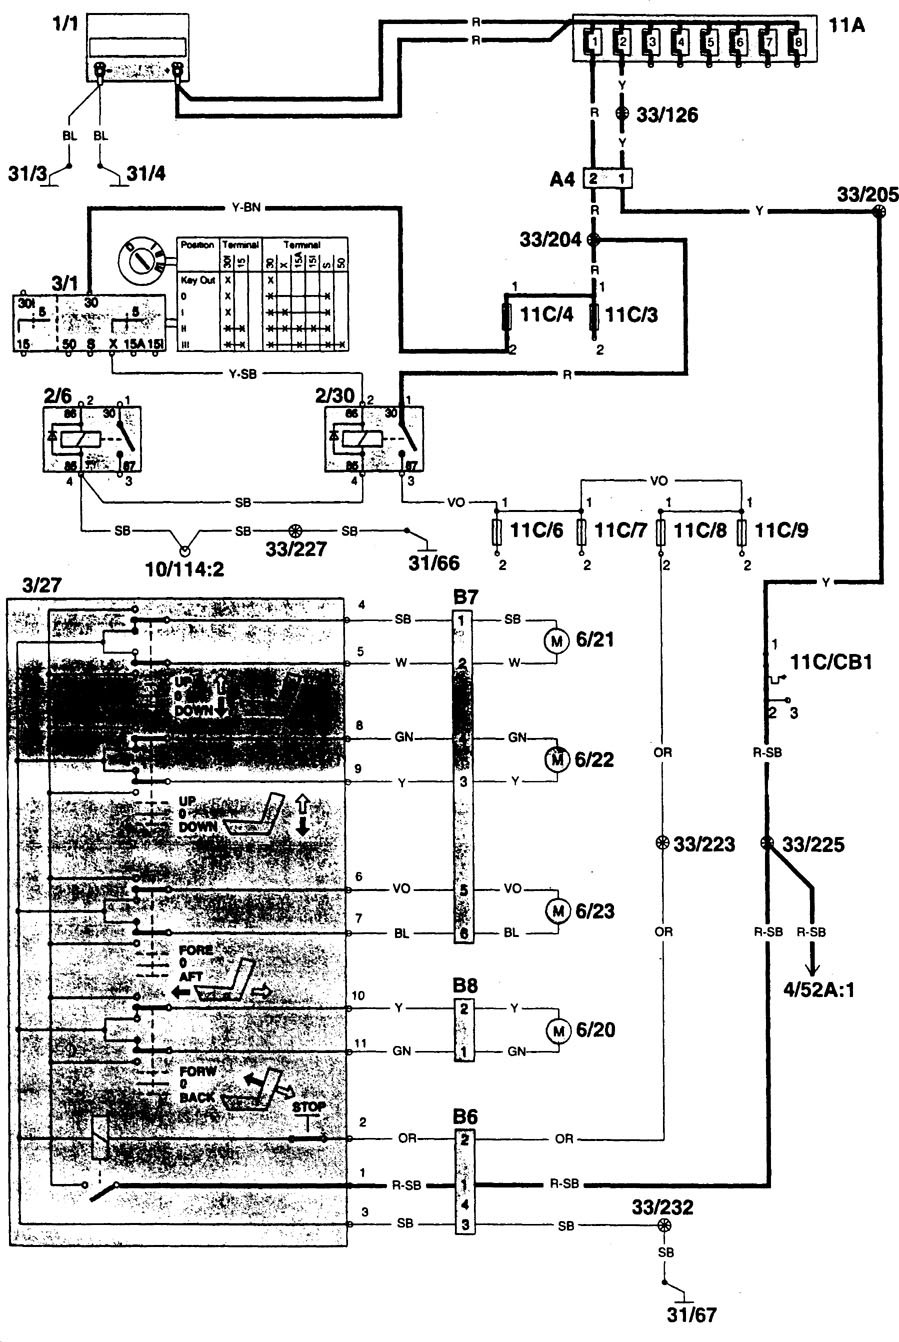 Volvo 960 Wiring Diagram 1996 Trusted Diagrams 1995 940 Engine Schematic U2022 1993